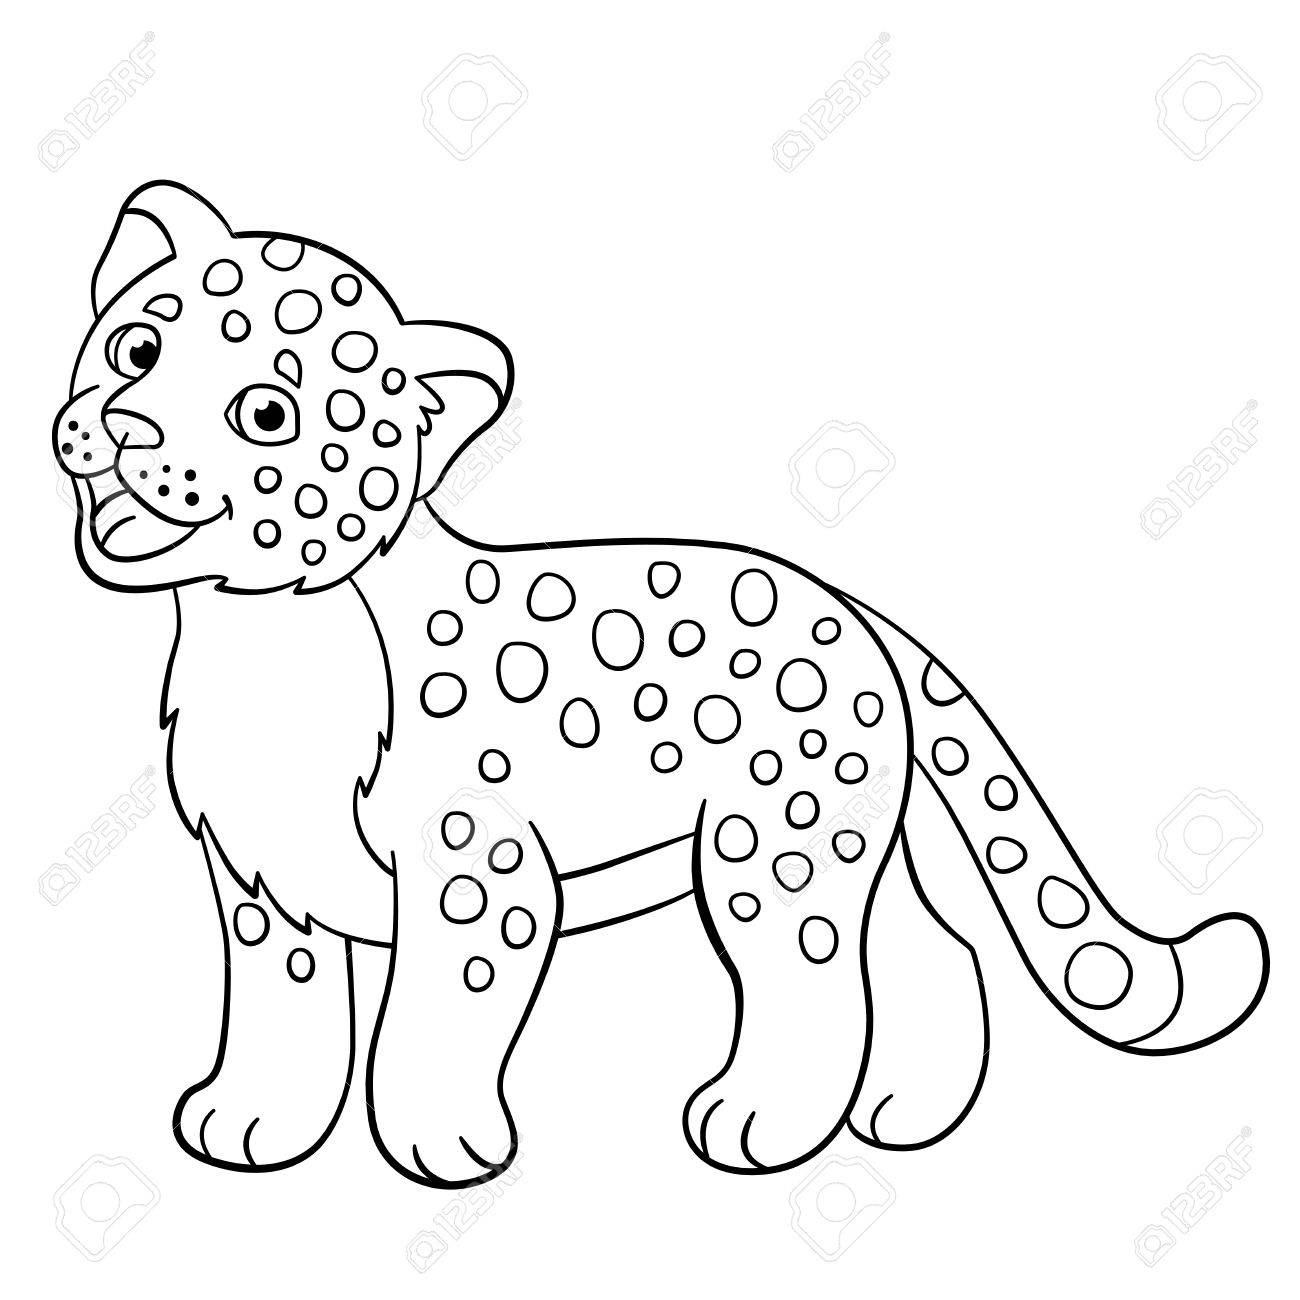 1300x1300 Coloring Pages. Little Cute Spotted Baby Jaguar Smiles. Royalty